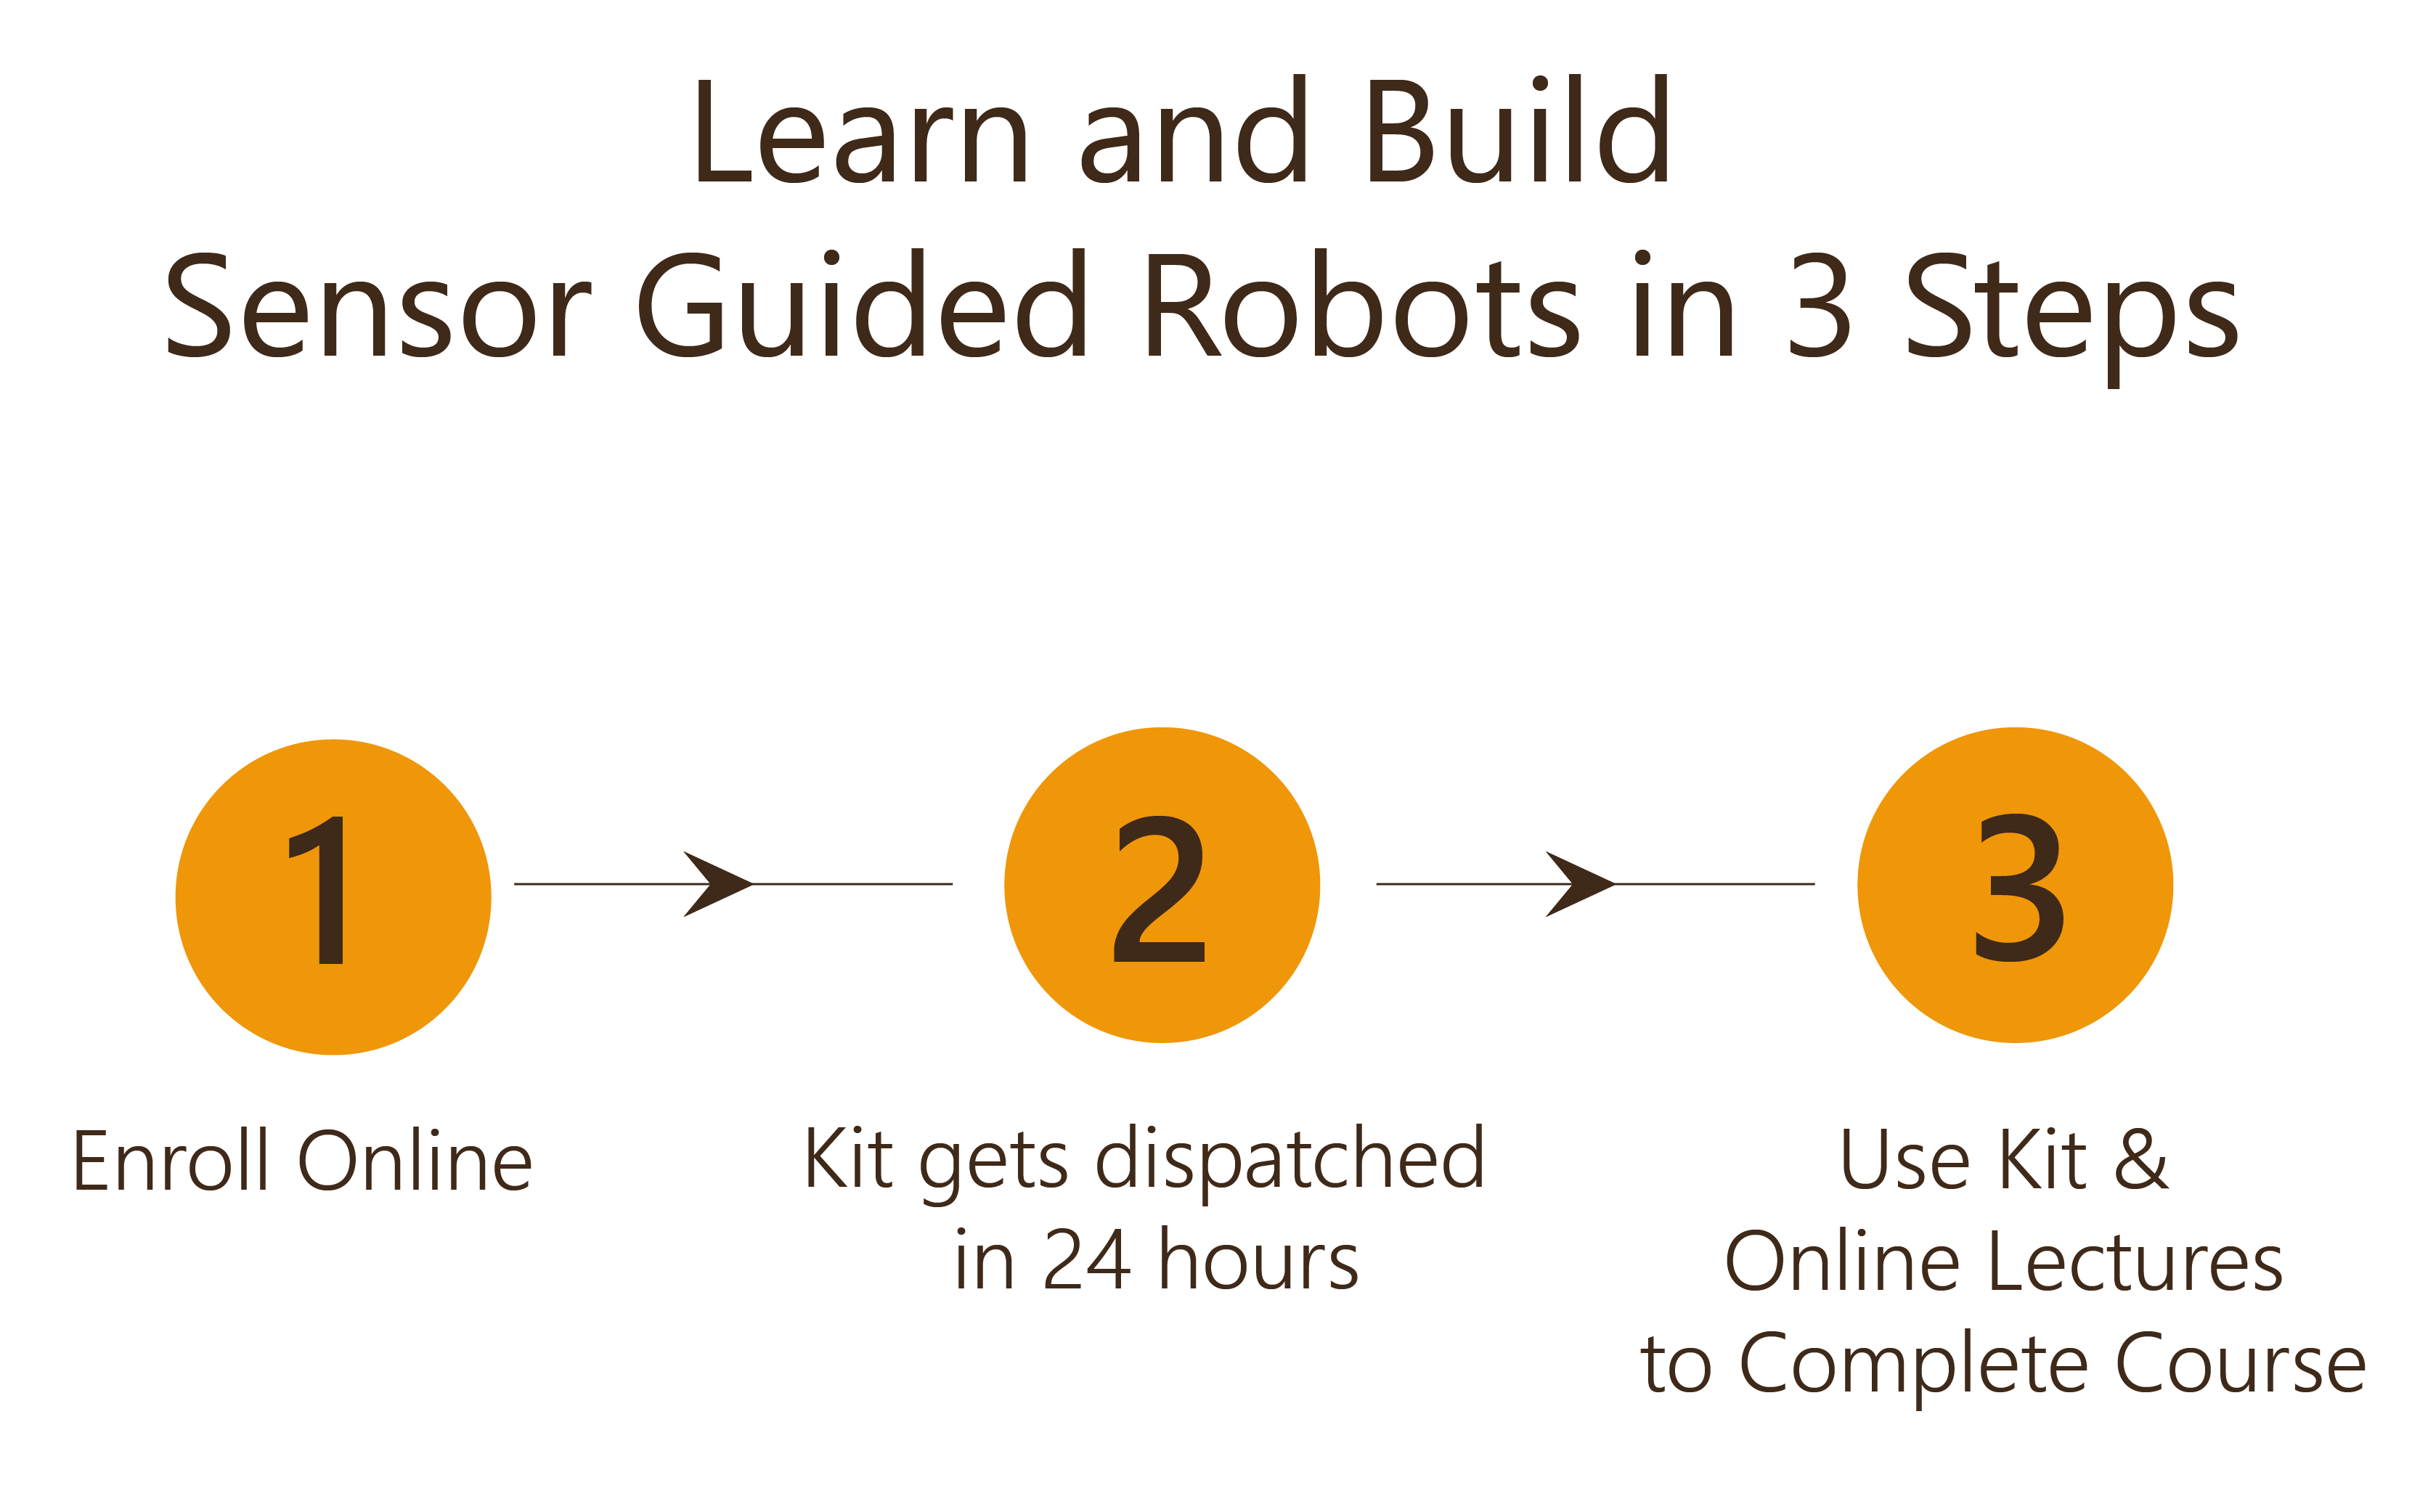 Learn and Build Sensor Guided Robots in 3 Steps